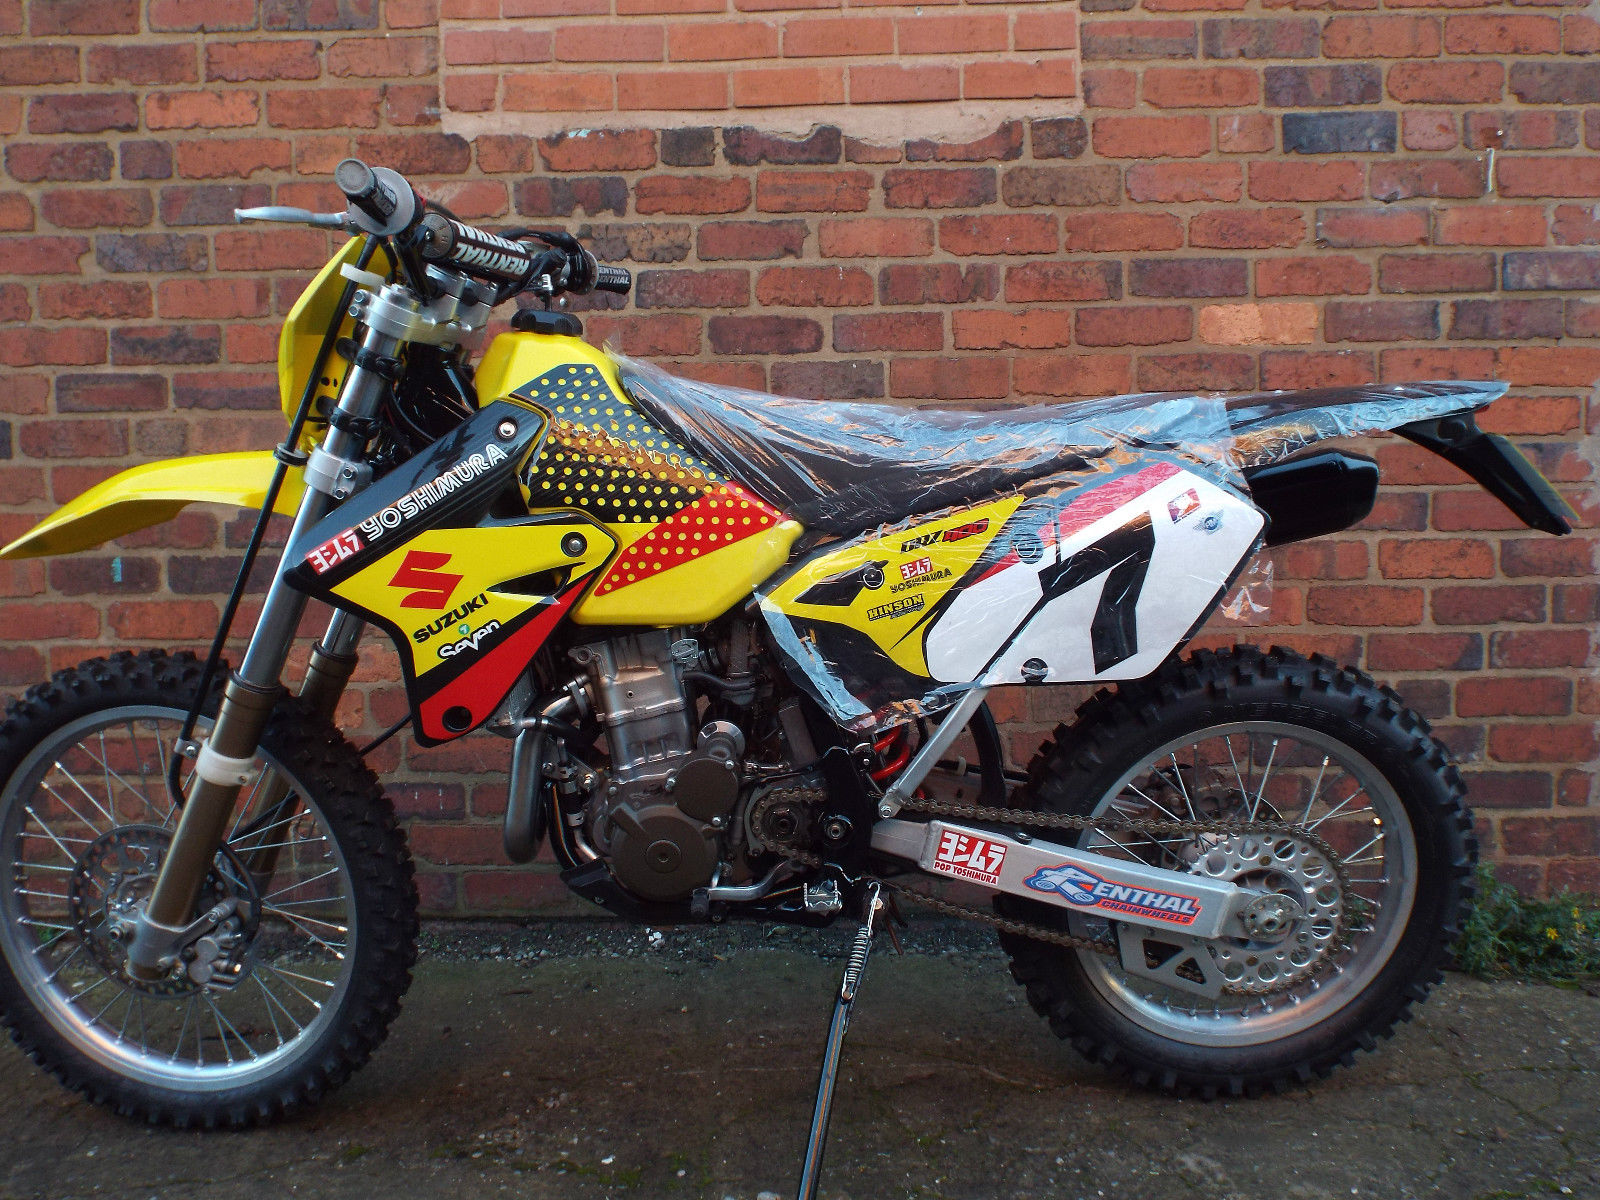 suzuki drz 400 e drz400 enduro bike fully rebuilt restored not ktm crf kxf rmz. Black Bedroom Furniture Sets. Home Design Ideas